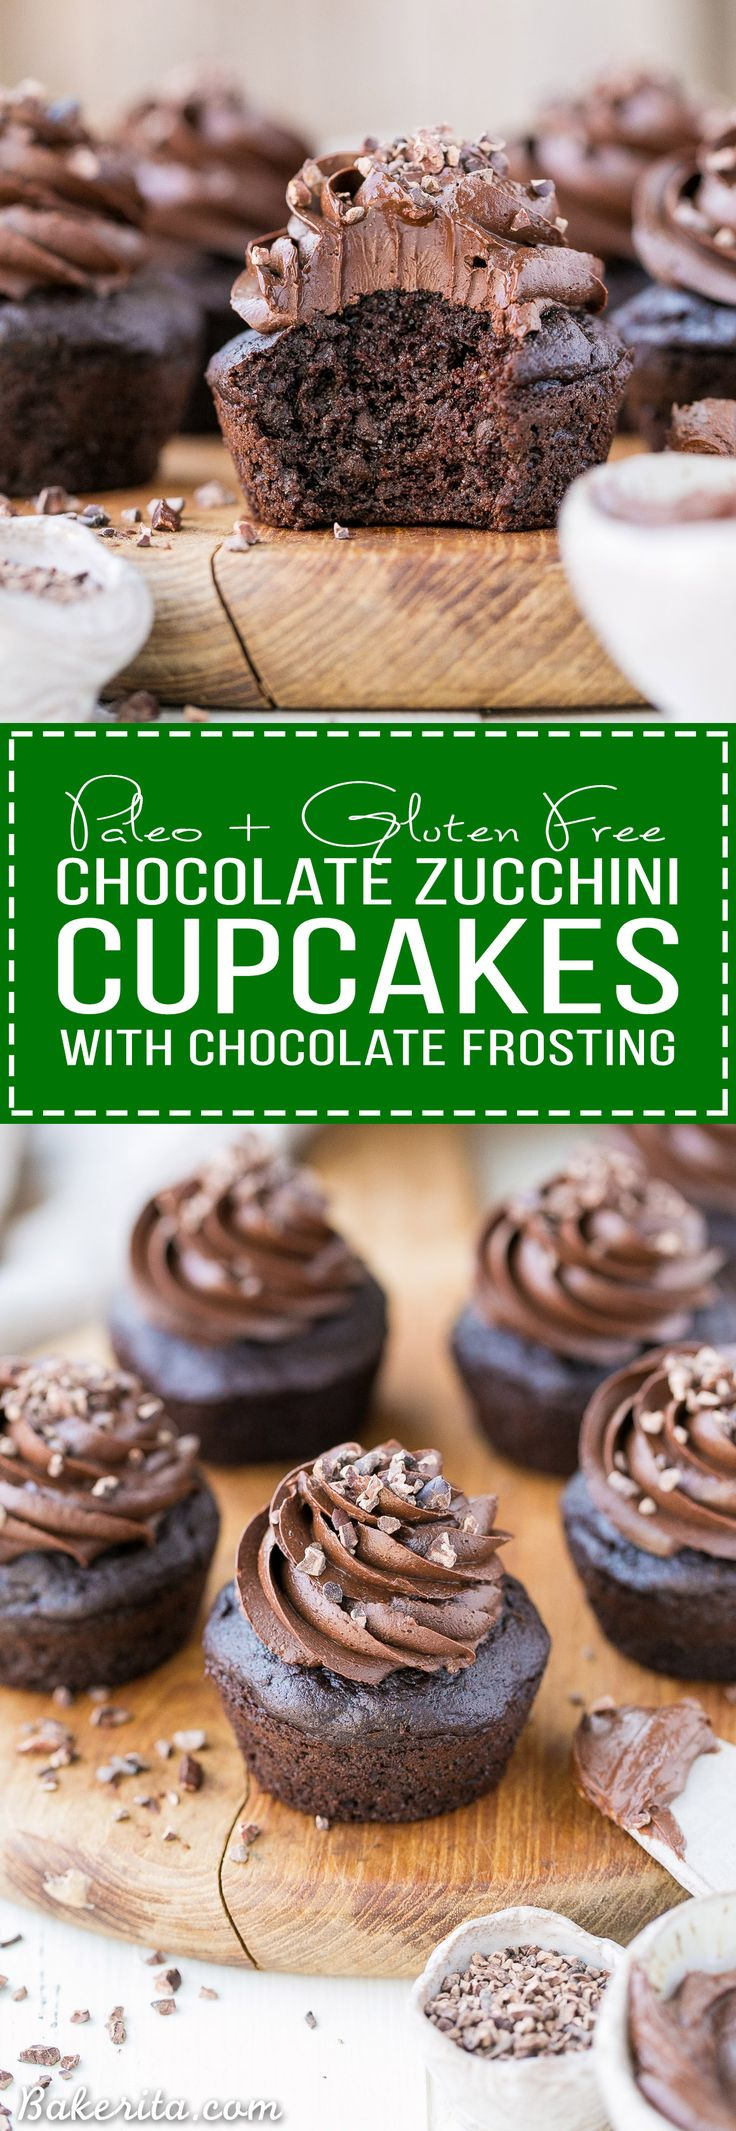 These Paleo Chocolate Zucchini Cupcakes are topped with a rich and fudgy Paleo Chocolate Frosting! You'd never guess there are veggies packed into these super moist and chocolatey cupcakes.